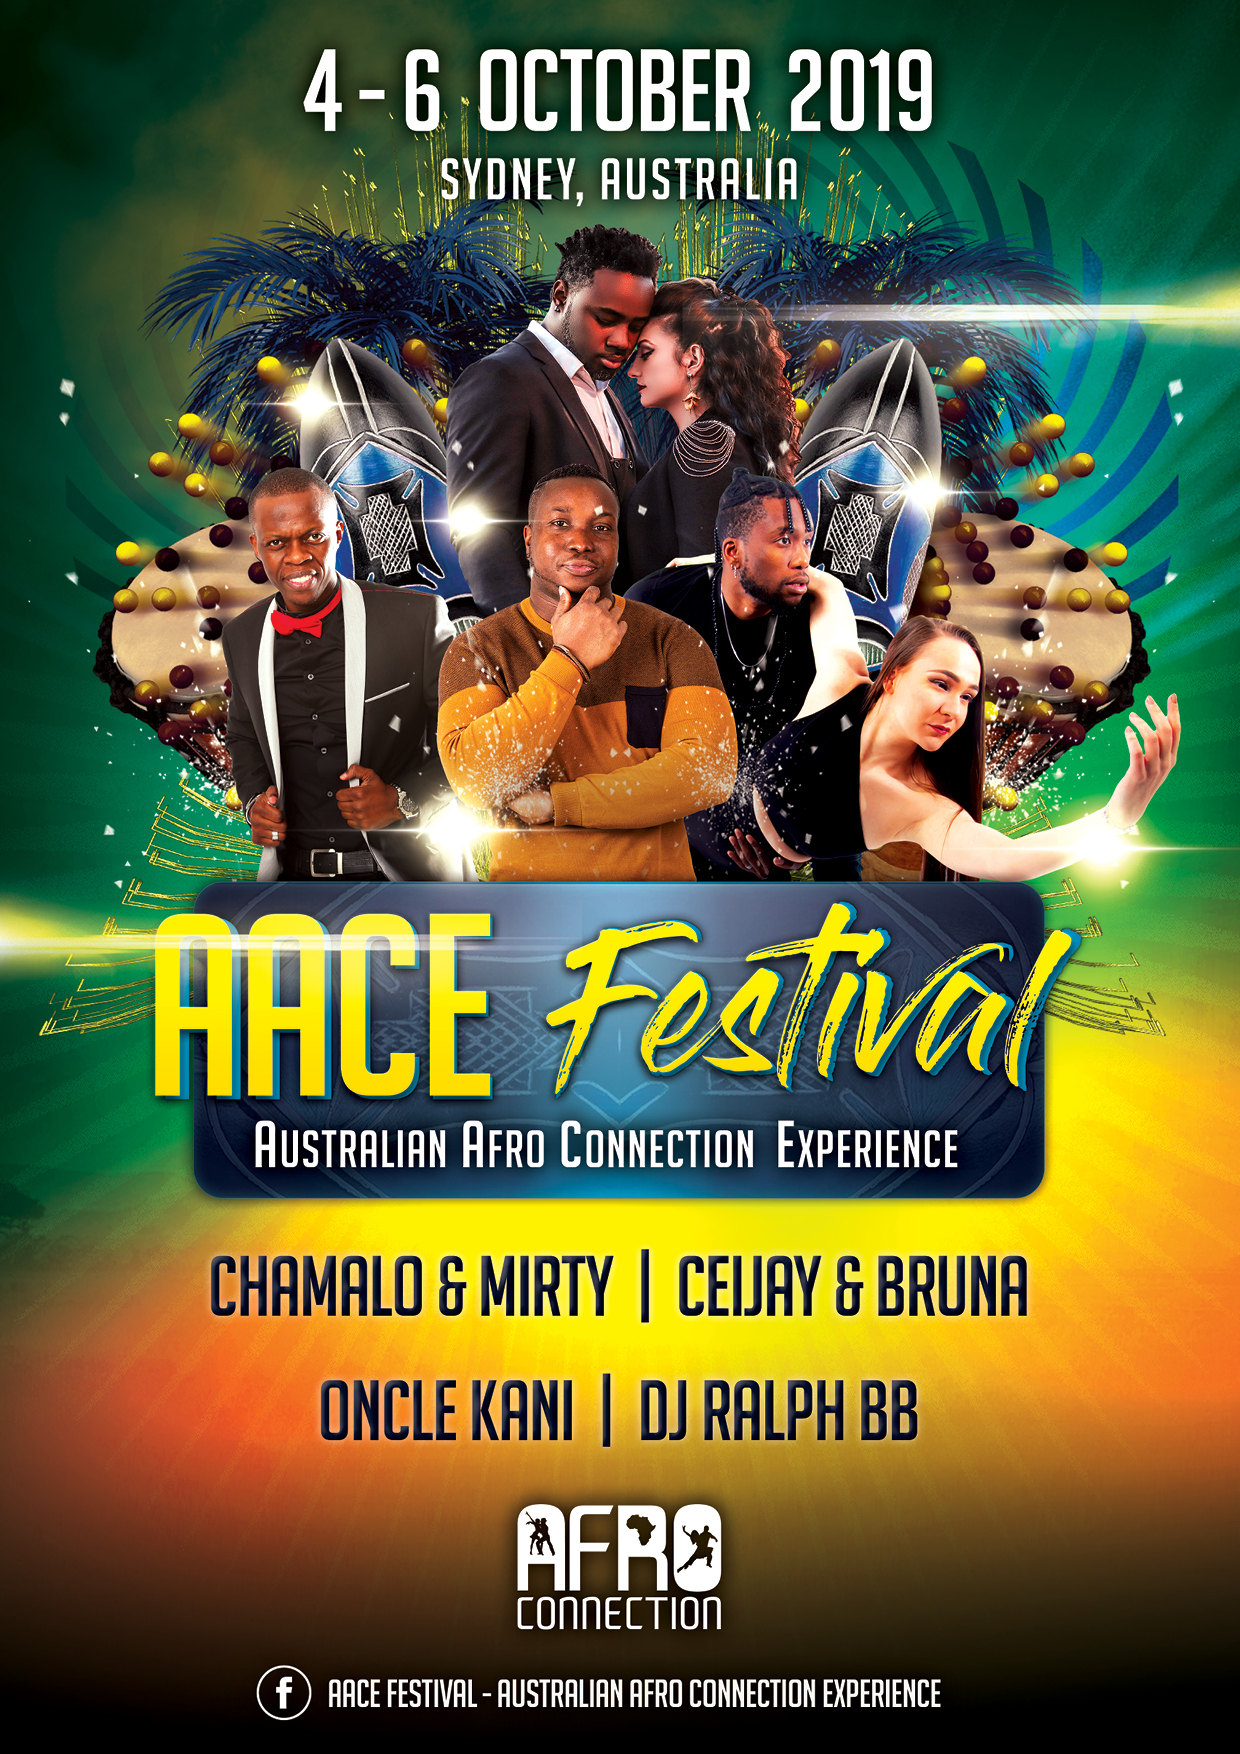 AACE Festival